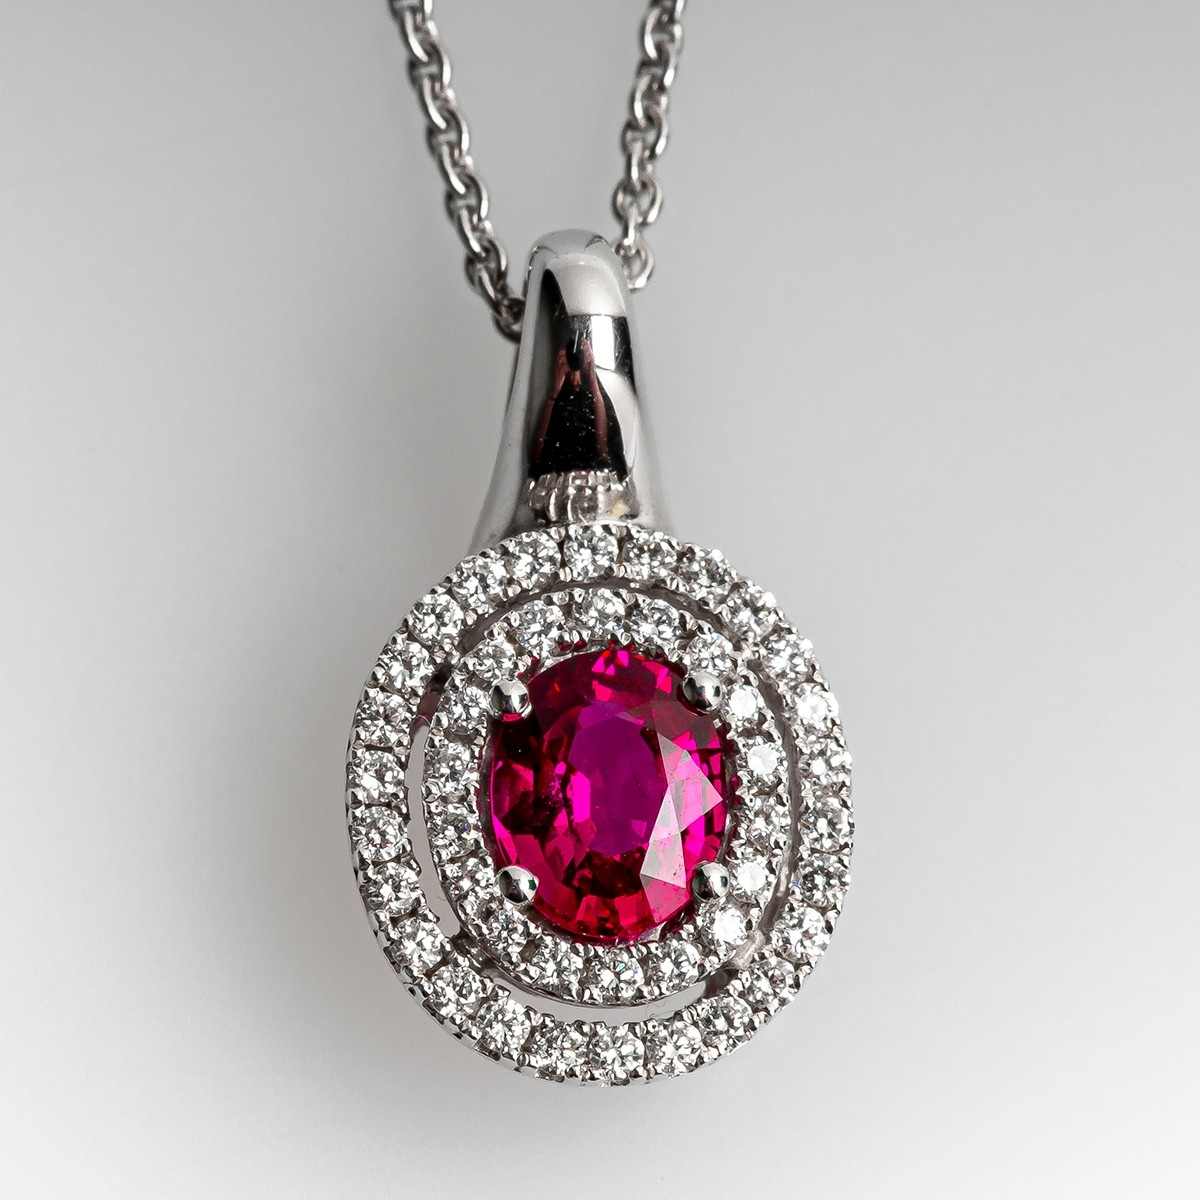 Details about  /Diamond /& Ruby Pendant Necklace Set in Yellow Gold Plated Silver Stunning Halo D